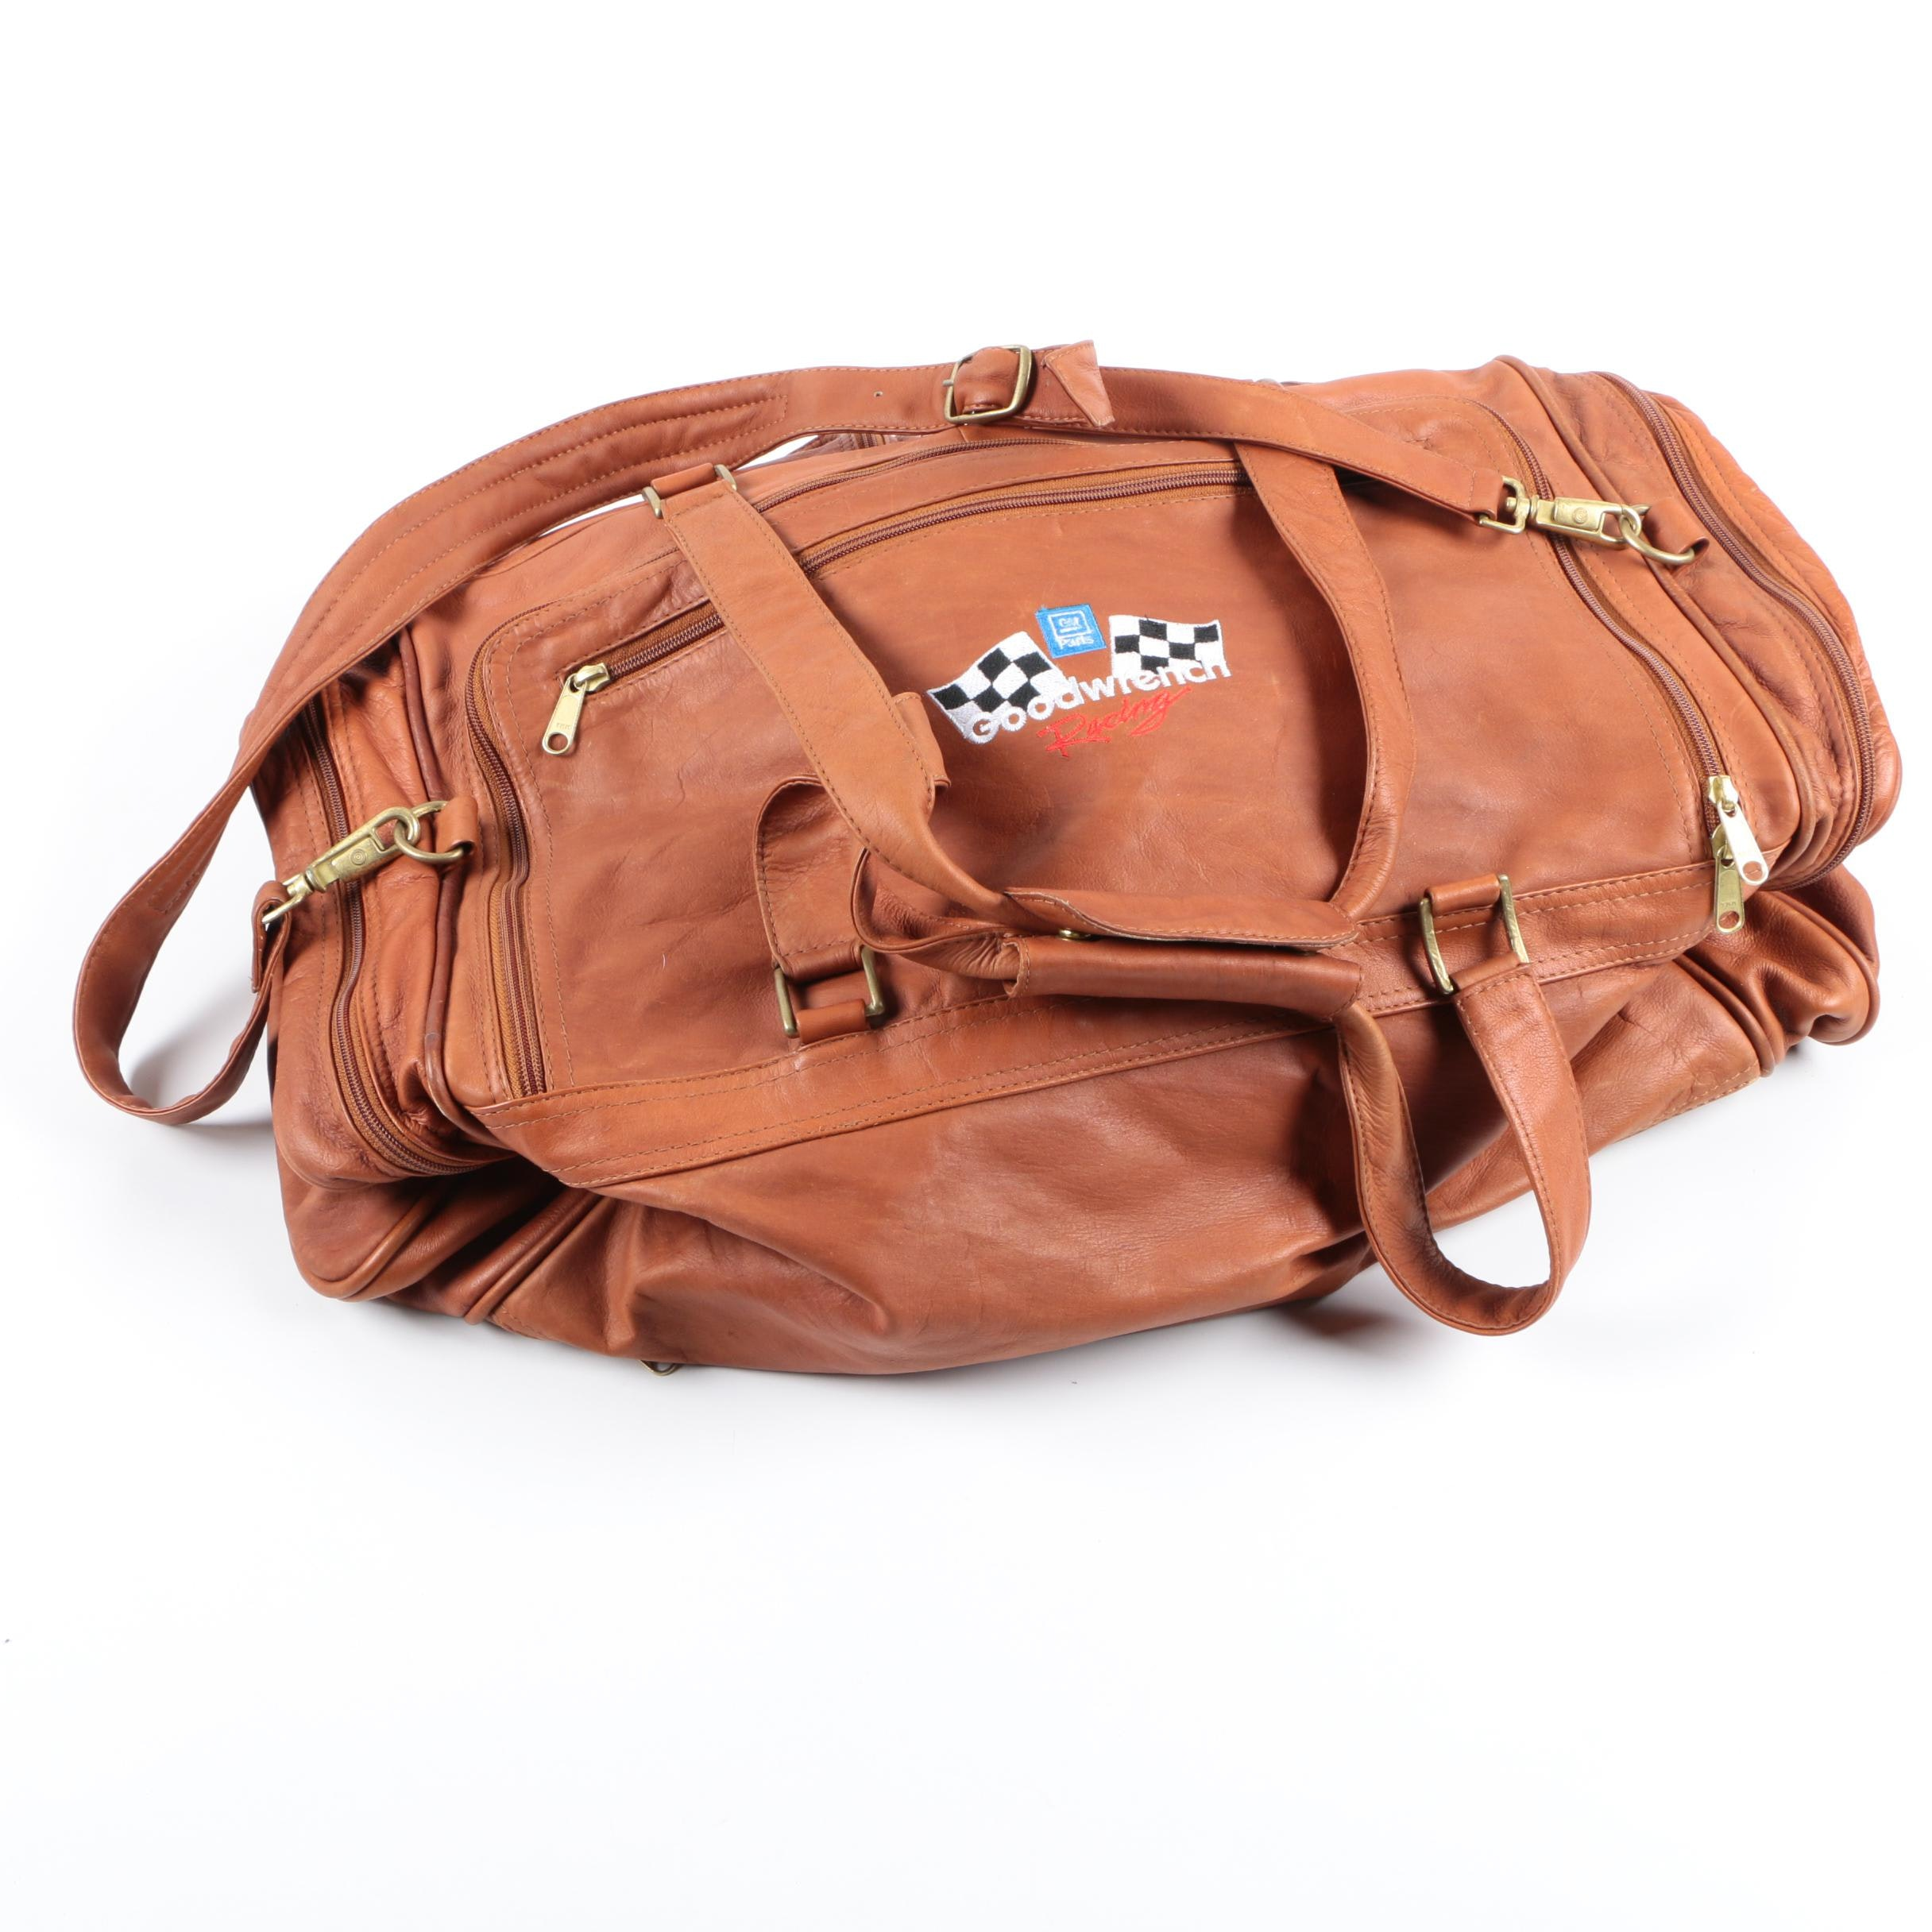 Vintage GM Goodwrench Racing Brown Leather Duffel Bag